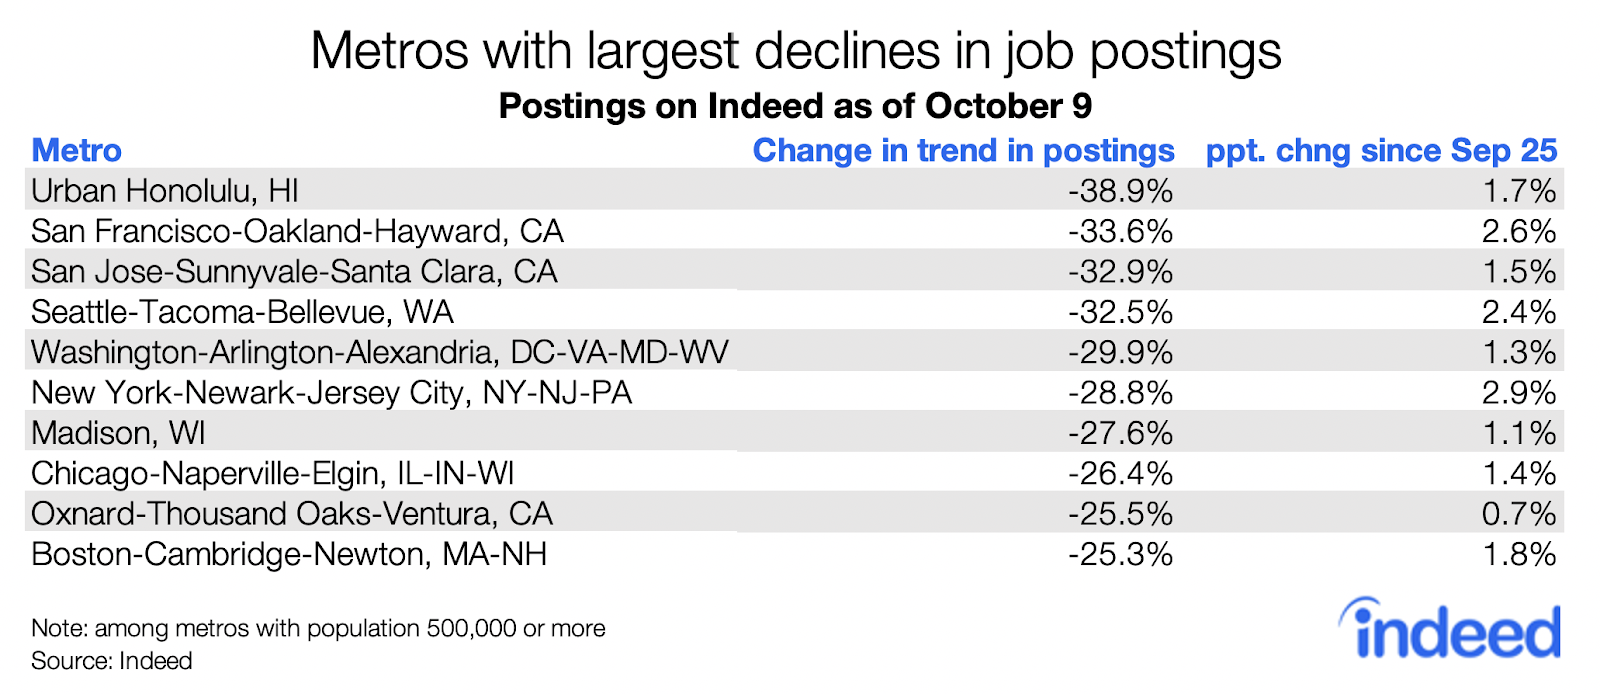 Table showing metros with the largest declines in job postings